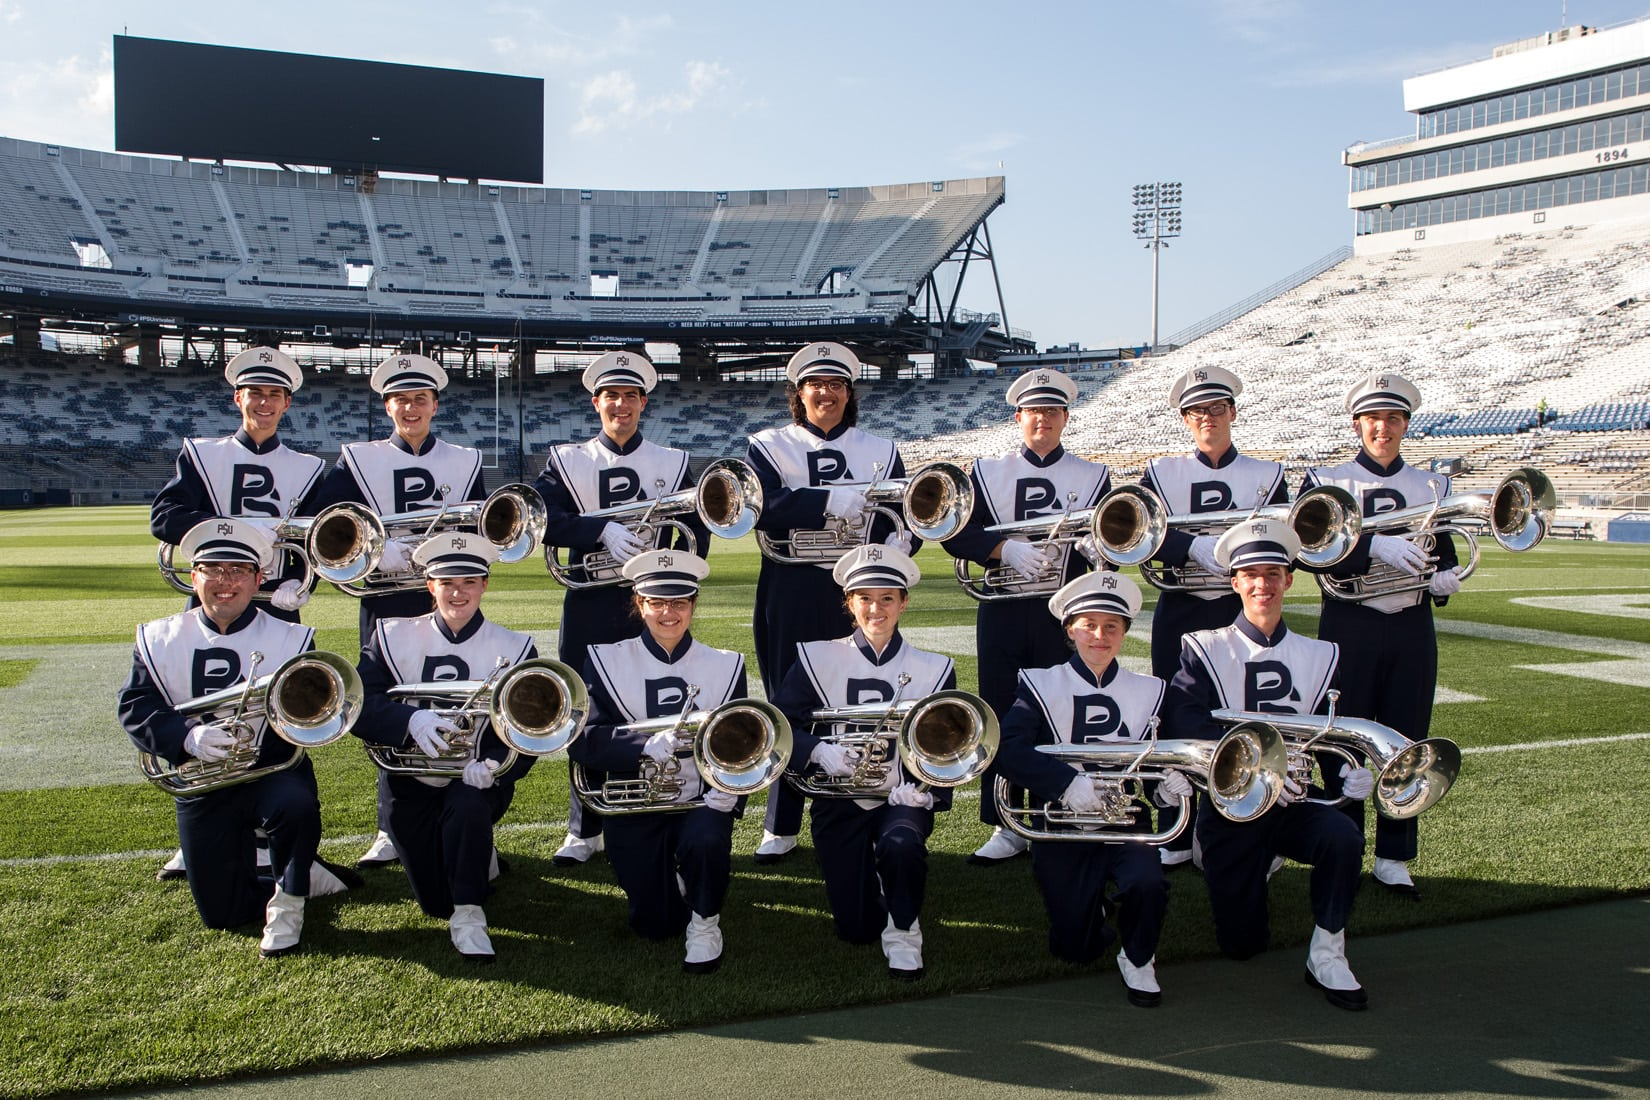 5-Penn-State-Blue-Band-Photos-State-College-PA-Bob-Lambert-Photography